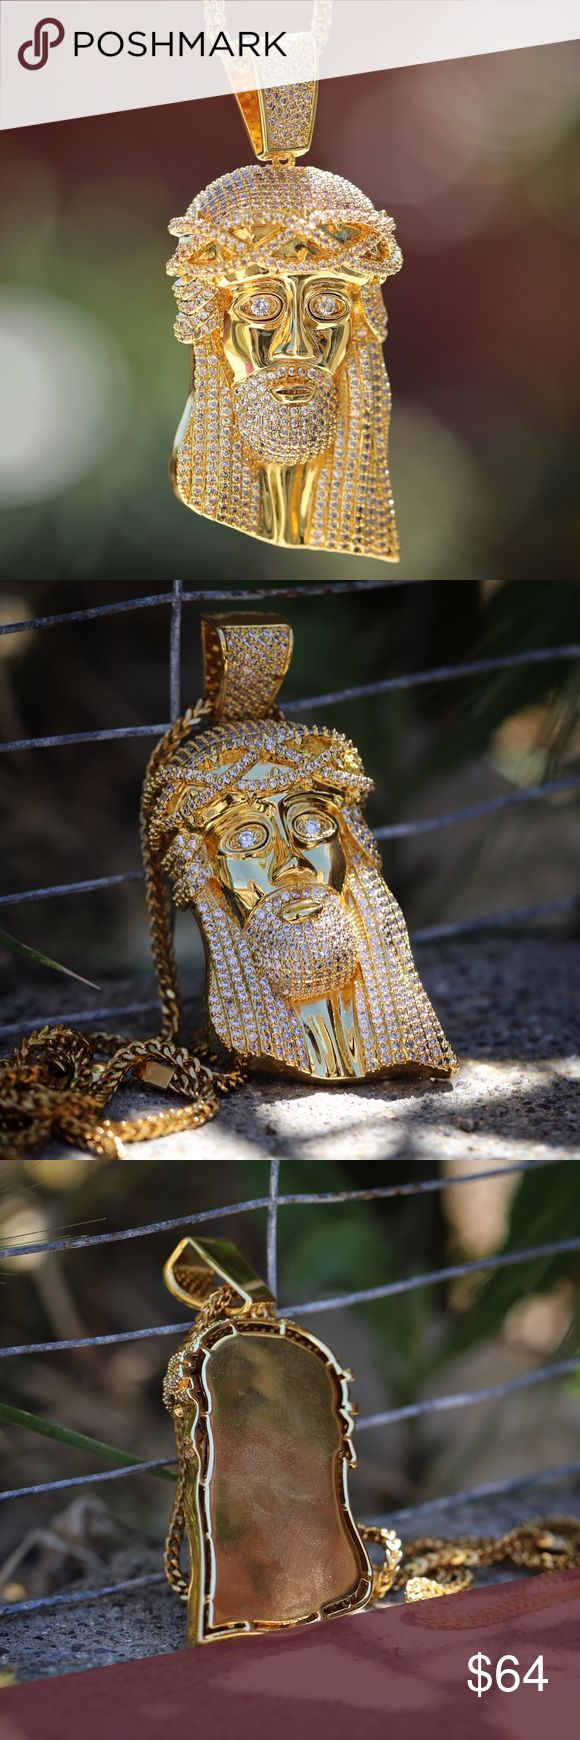 Large Size Iced Out Hip Hop Jesus Piece Necklace Large Size Iced Out Hip Hop Jesus Piece Necklace  large size Jesus Piece 3 inches in length.  Chain is 18k Gold plated over 316 stainless.  Comes with a 3mm width 30 inch 316 stainless Franco chain. TSV Jewelers  Accessories Jewelry